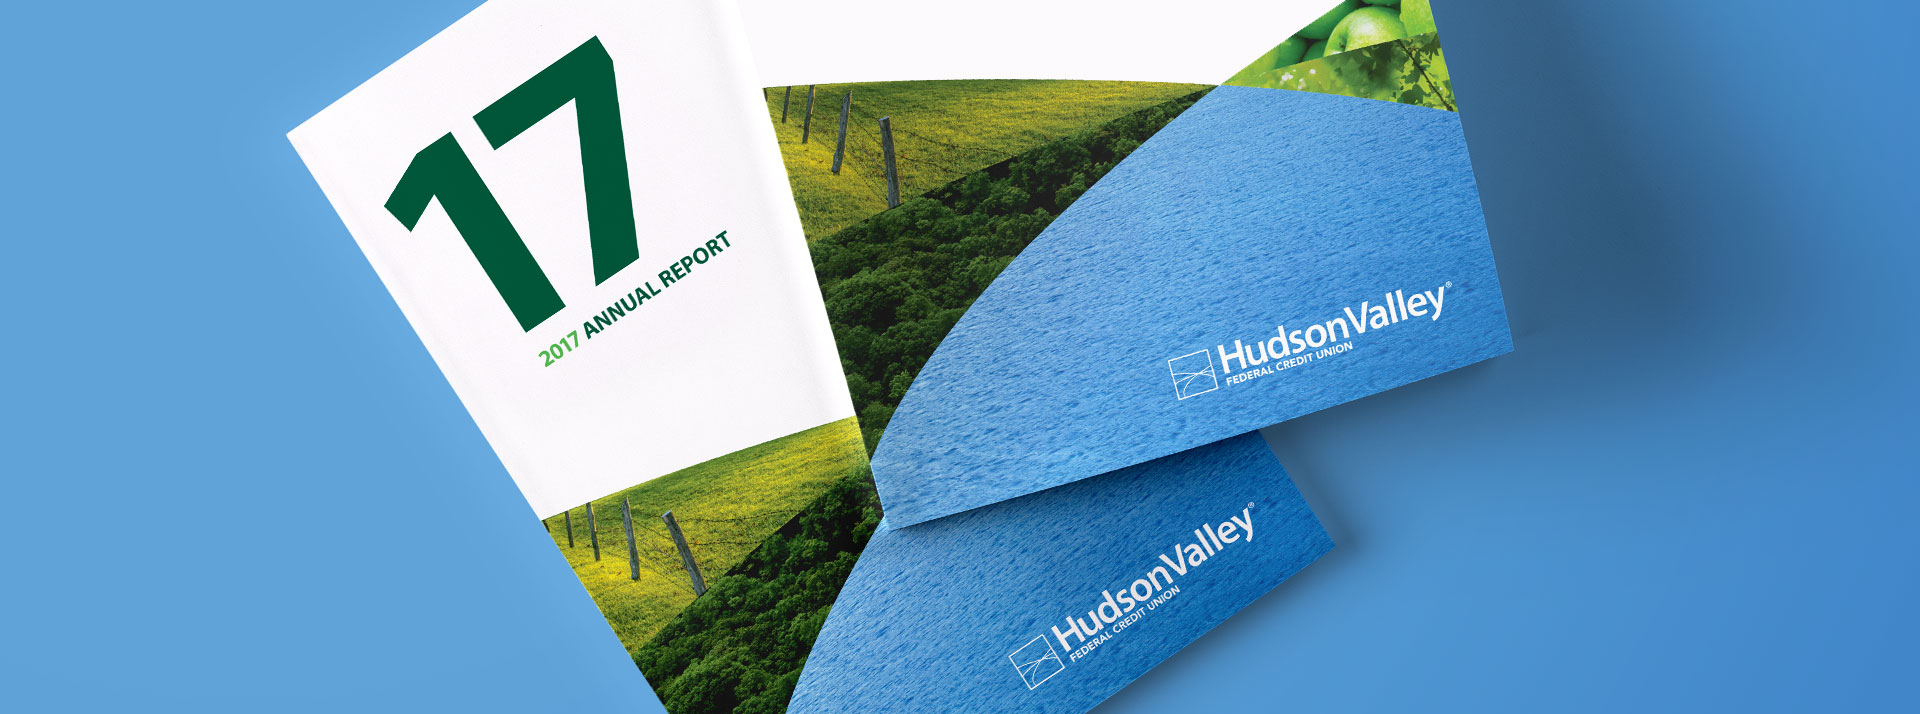 Hudson Valley Federal Credit Union 2017 Annual Report Cover